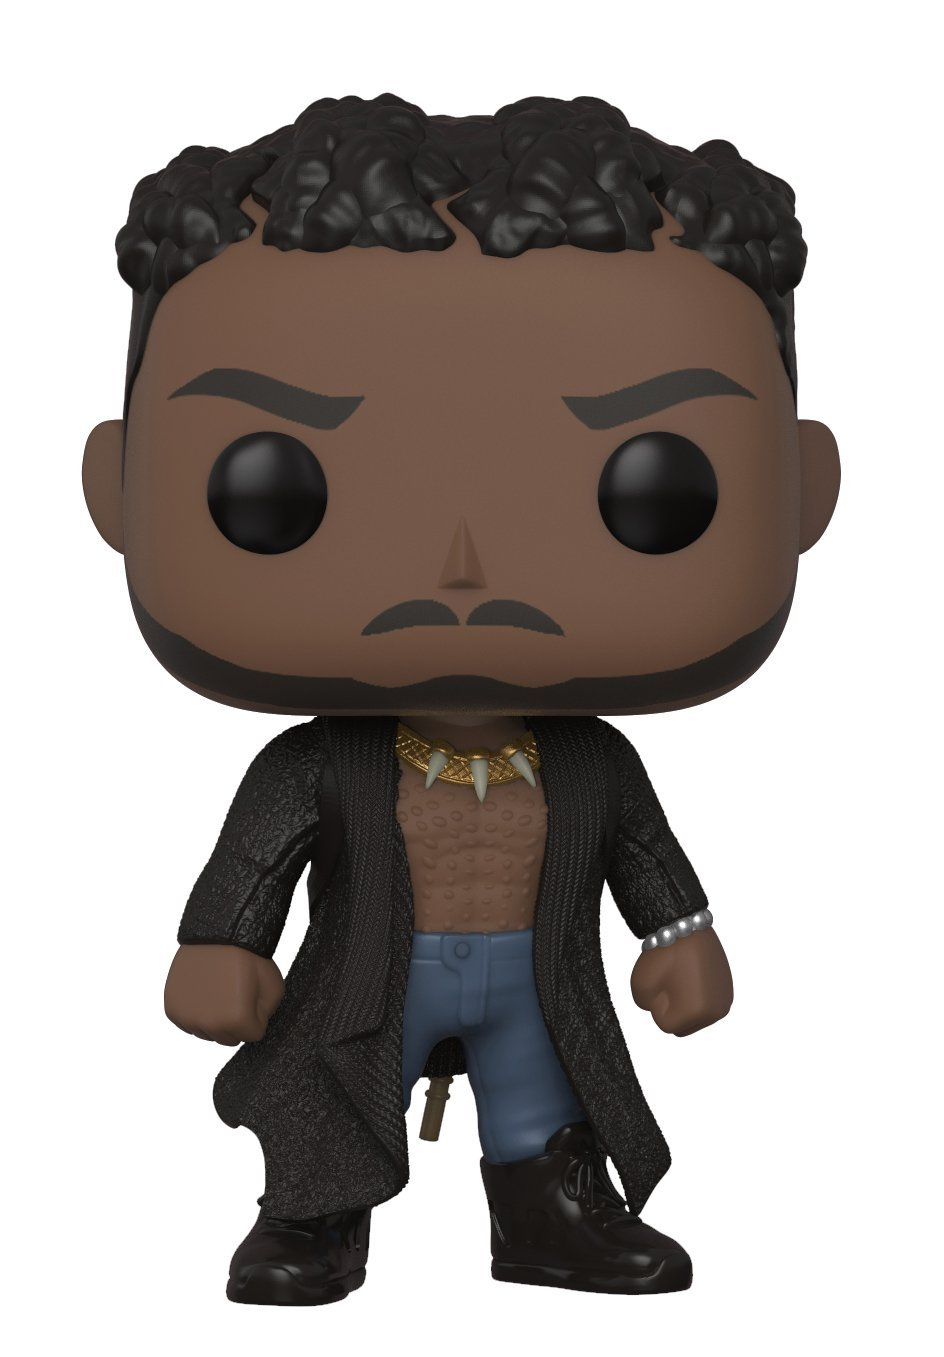 Funko Black Panther Pop Vinyls Wave 2 M Baku Klaue